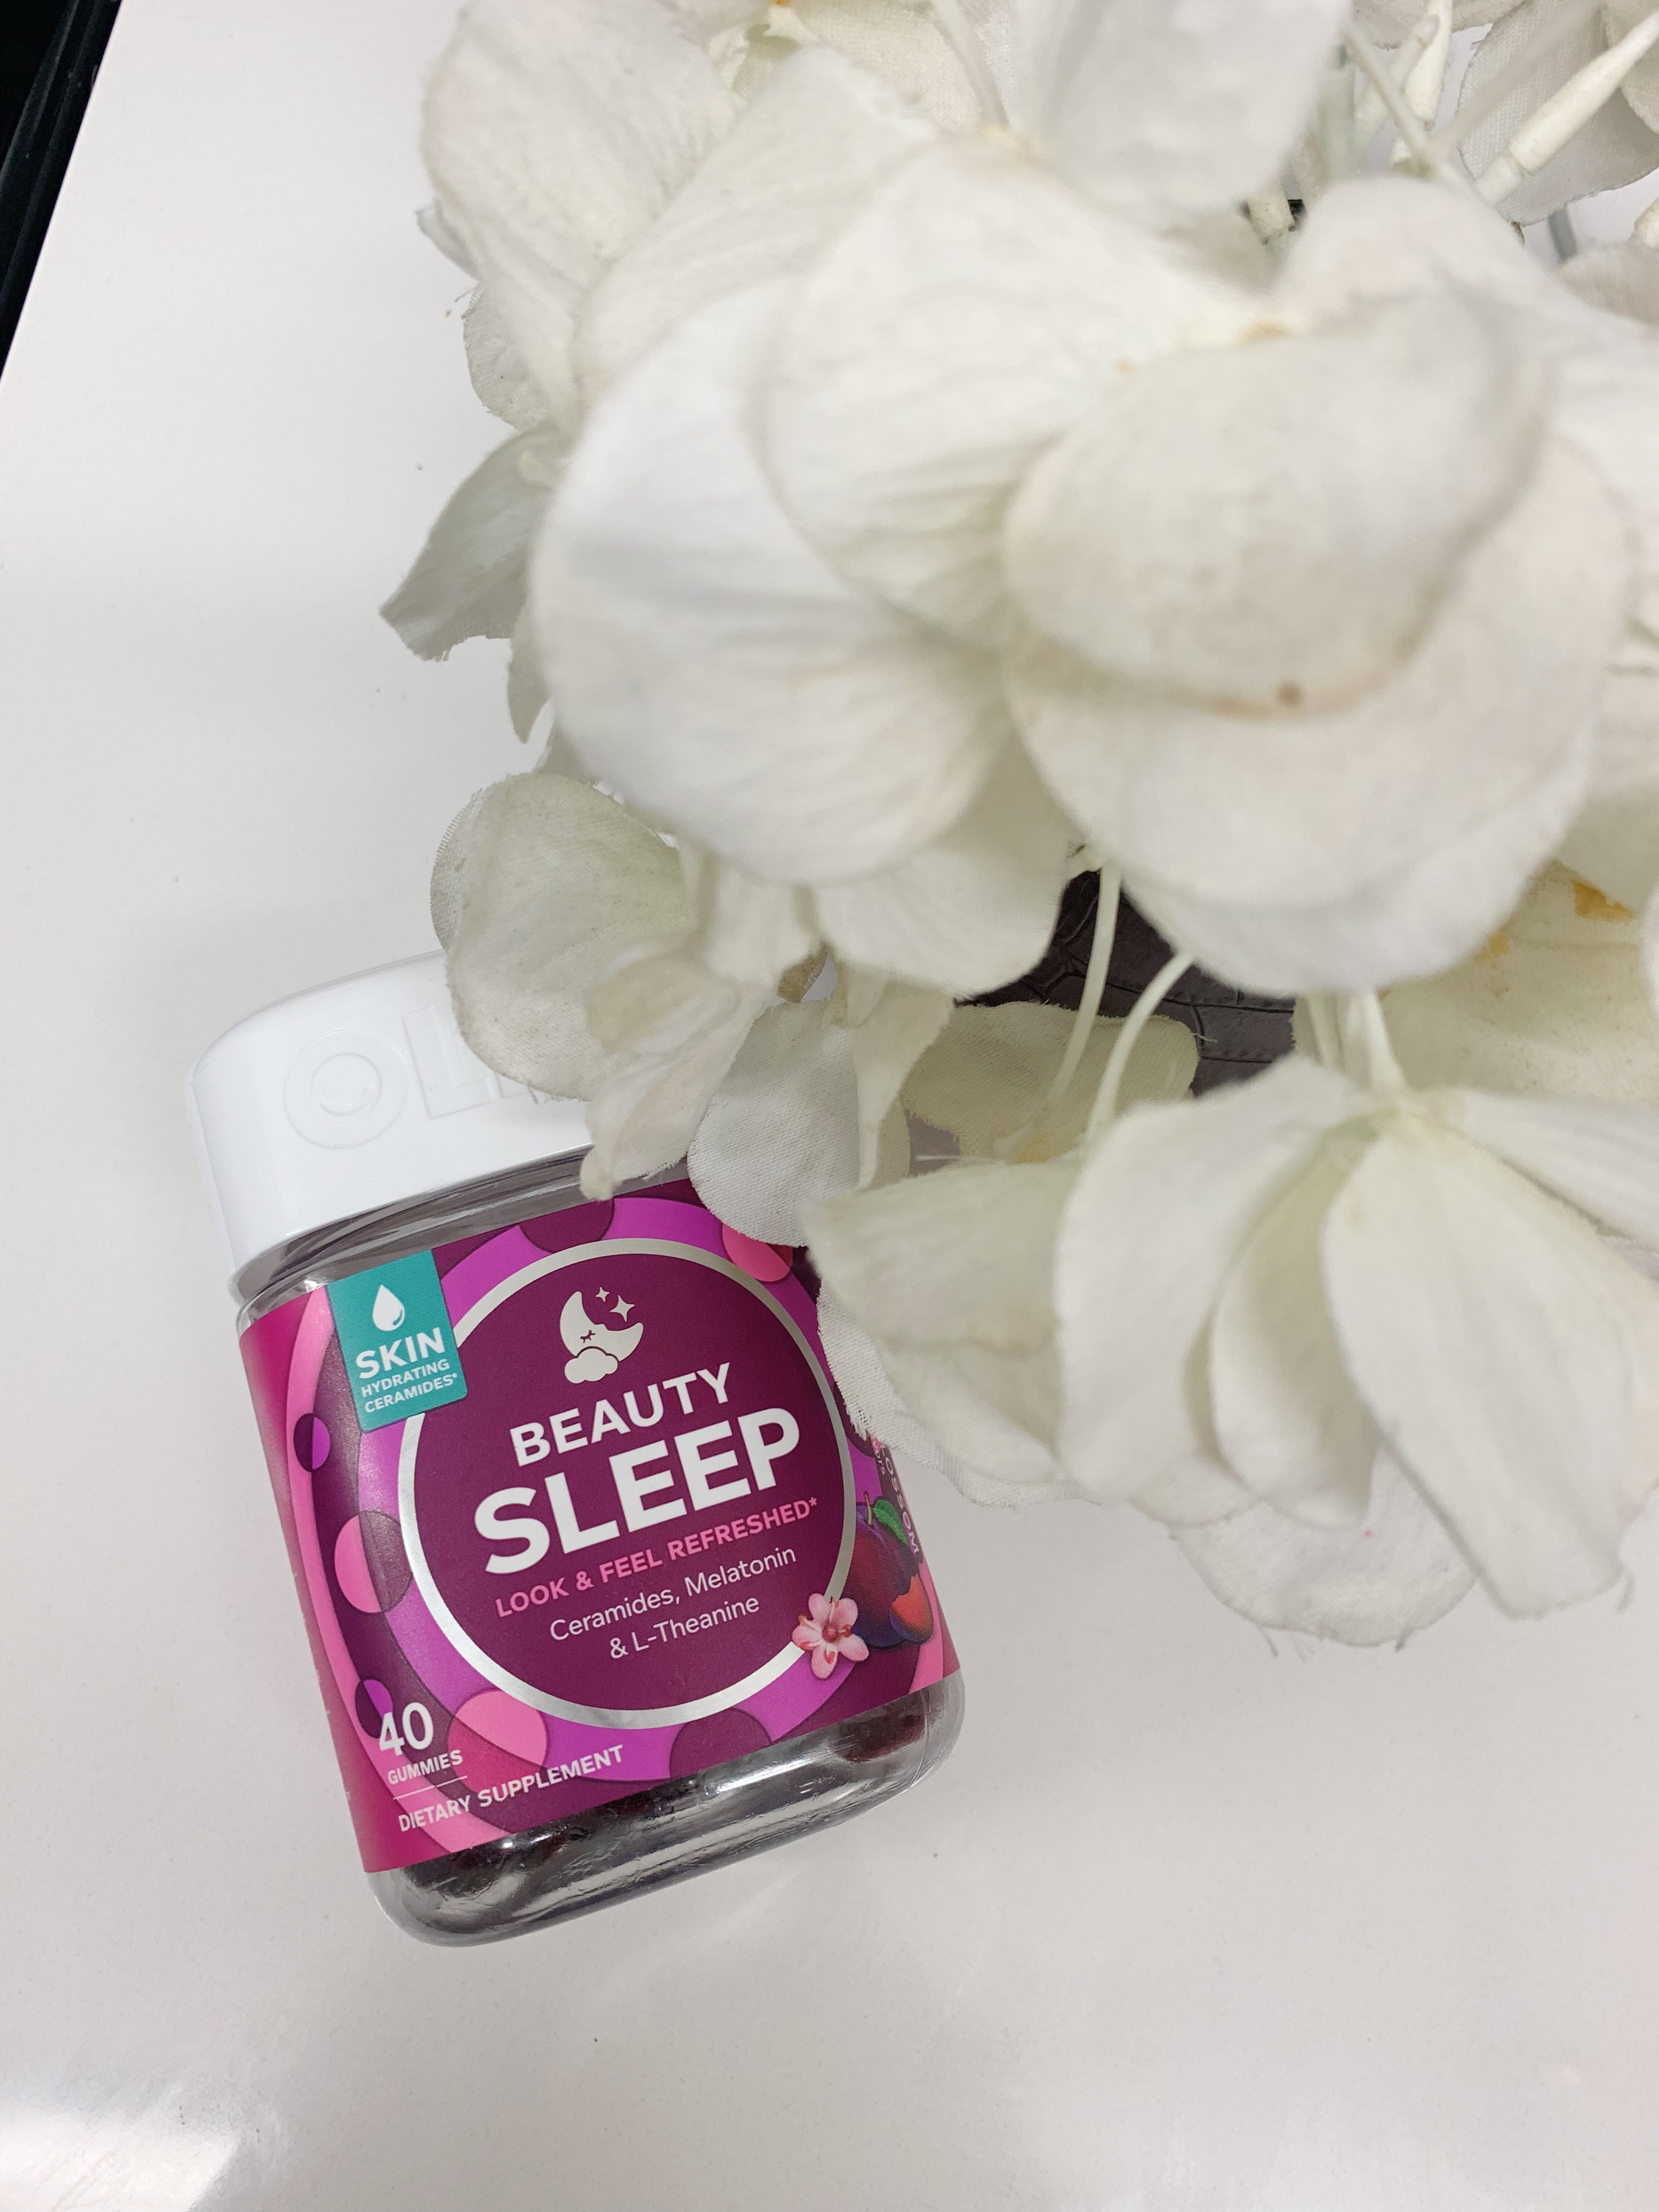 olly nutrition beauty sleep review. nighttime beauty routine vitamins